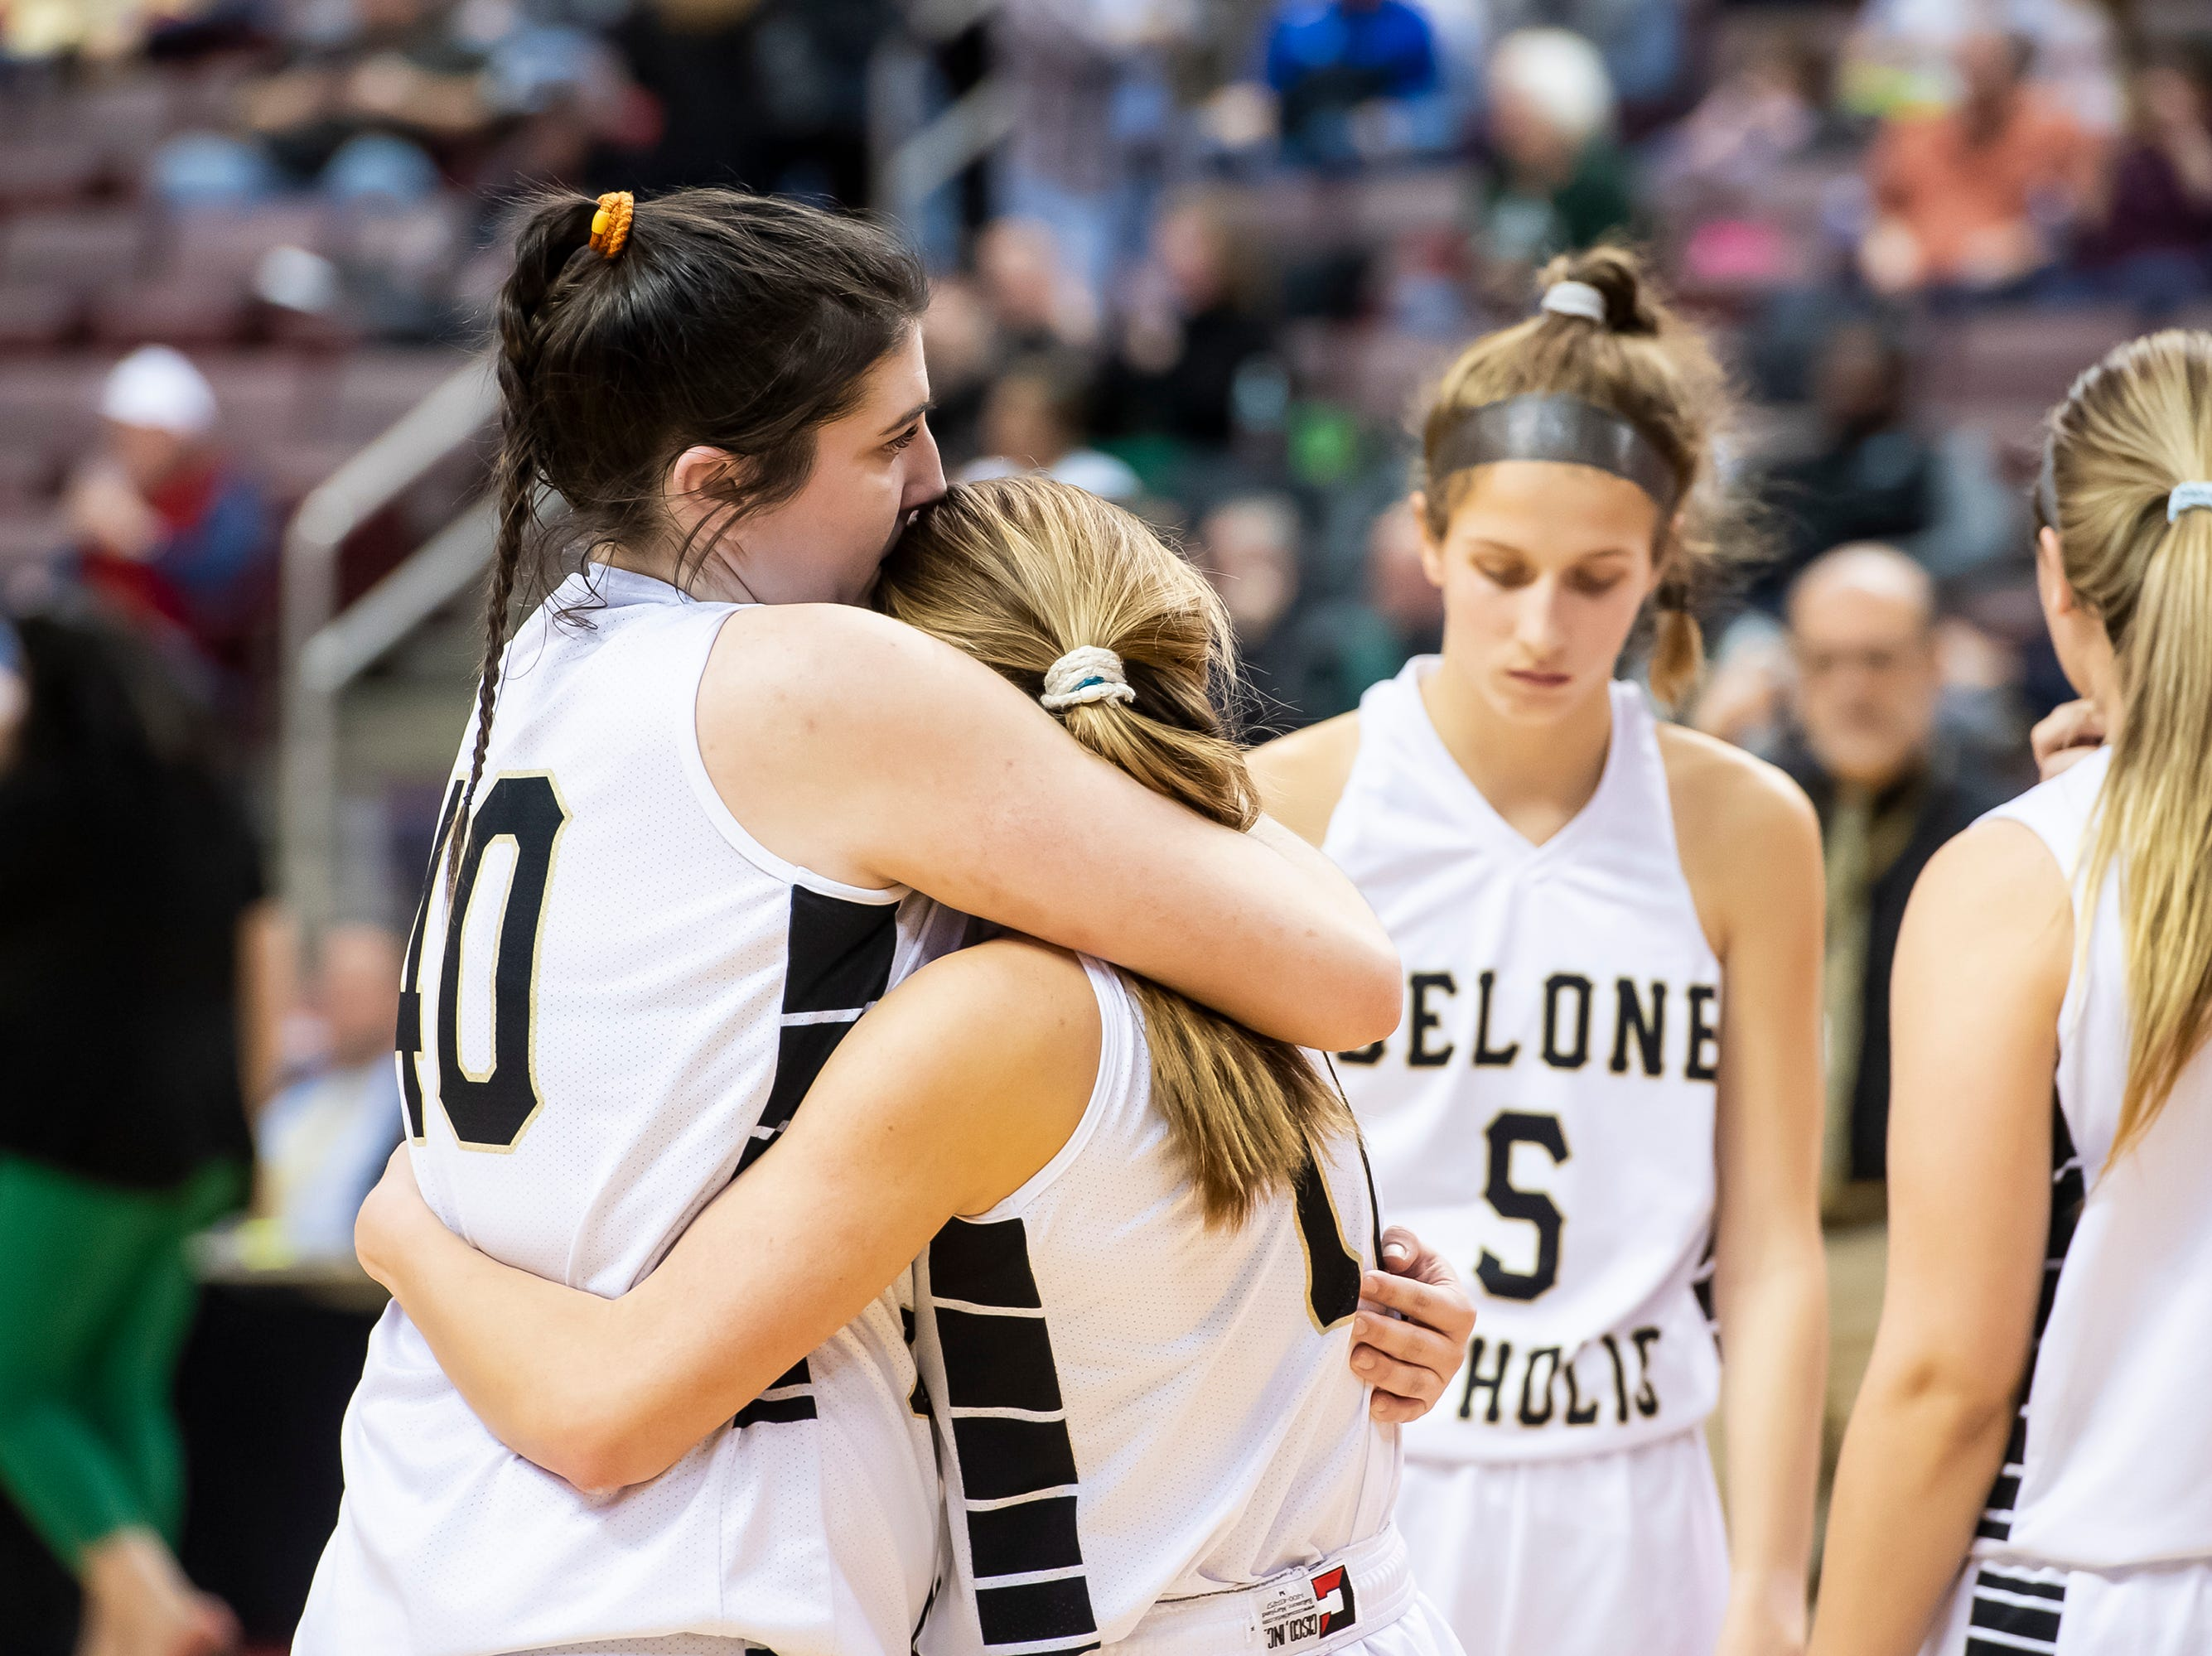 Delone Catholic's Bradi Zumbrum, left, and Riley Vingsen hug after falling to Trinity in the District 3 3A girls championship game against Trinity at the Giant Center in Hershey Wednesday, Feb. 27, 2019. The Squirettes fell 44-33.